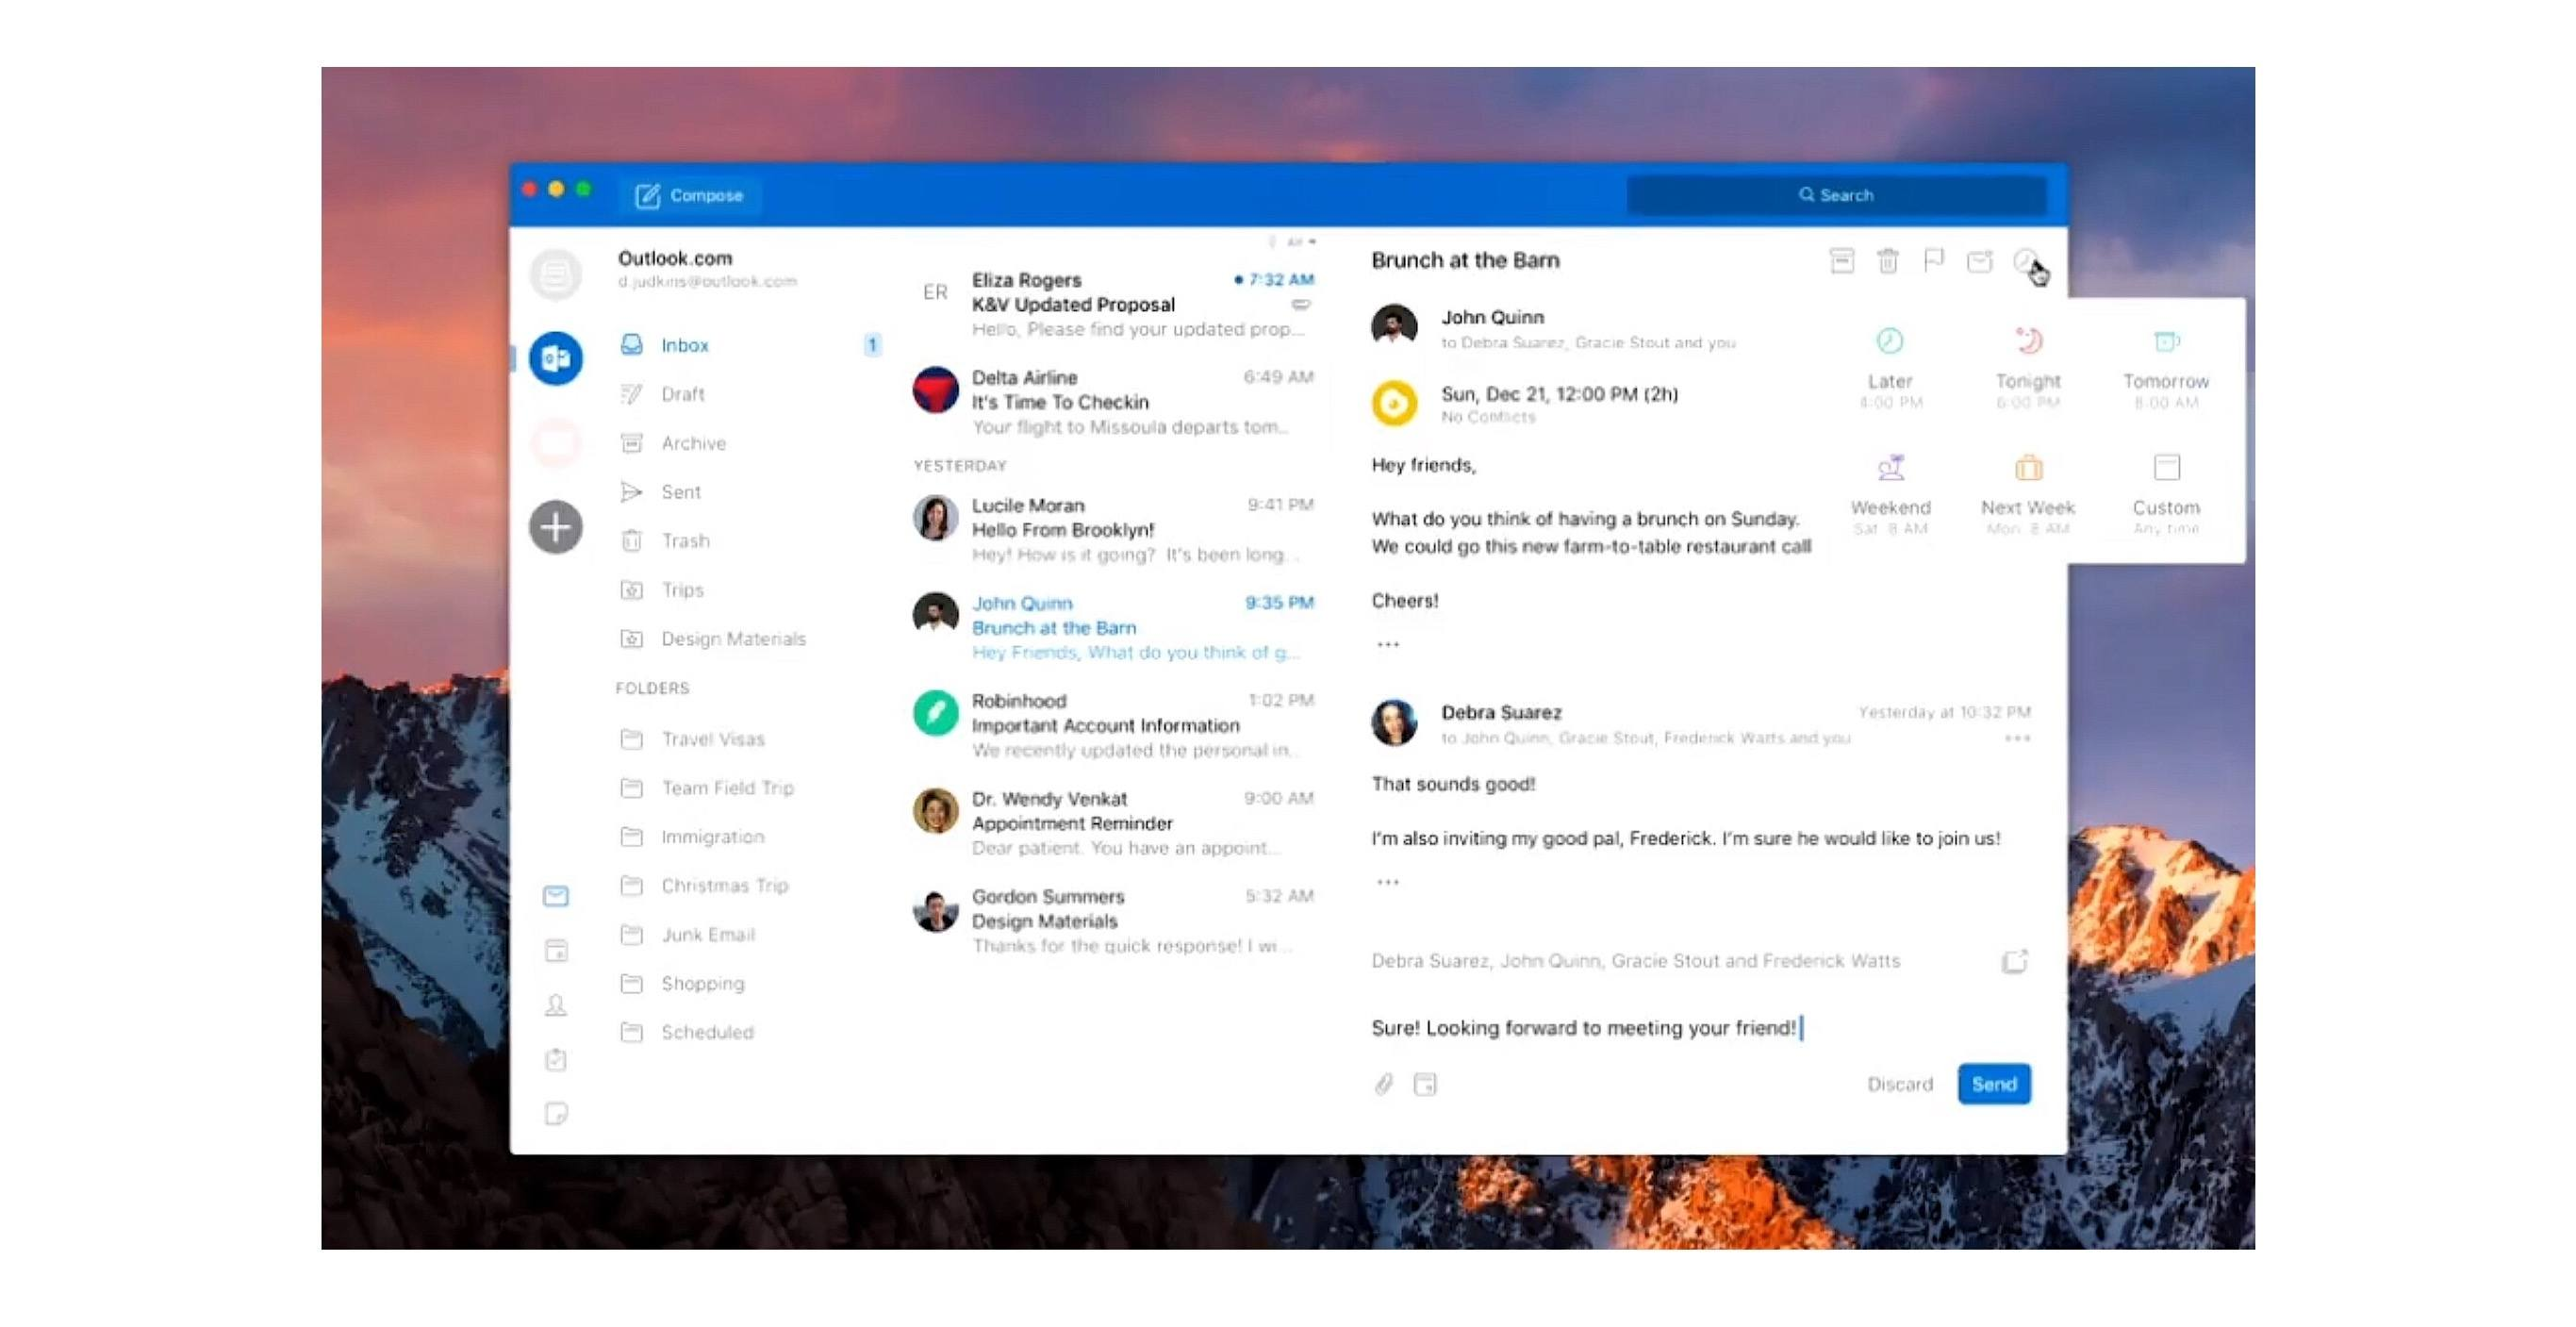 Microsoft Outlook for Mac Undergoing Major Redesign